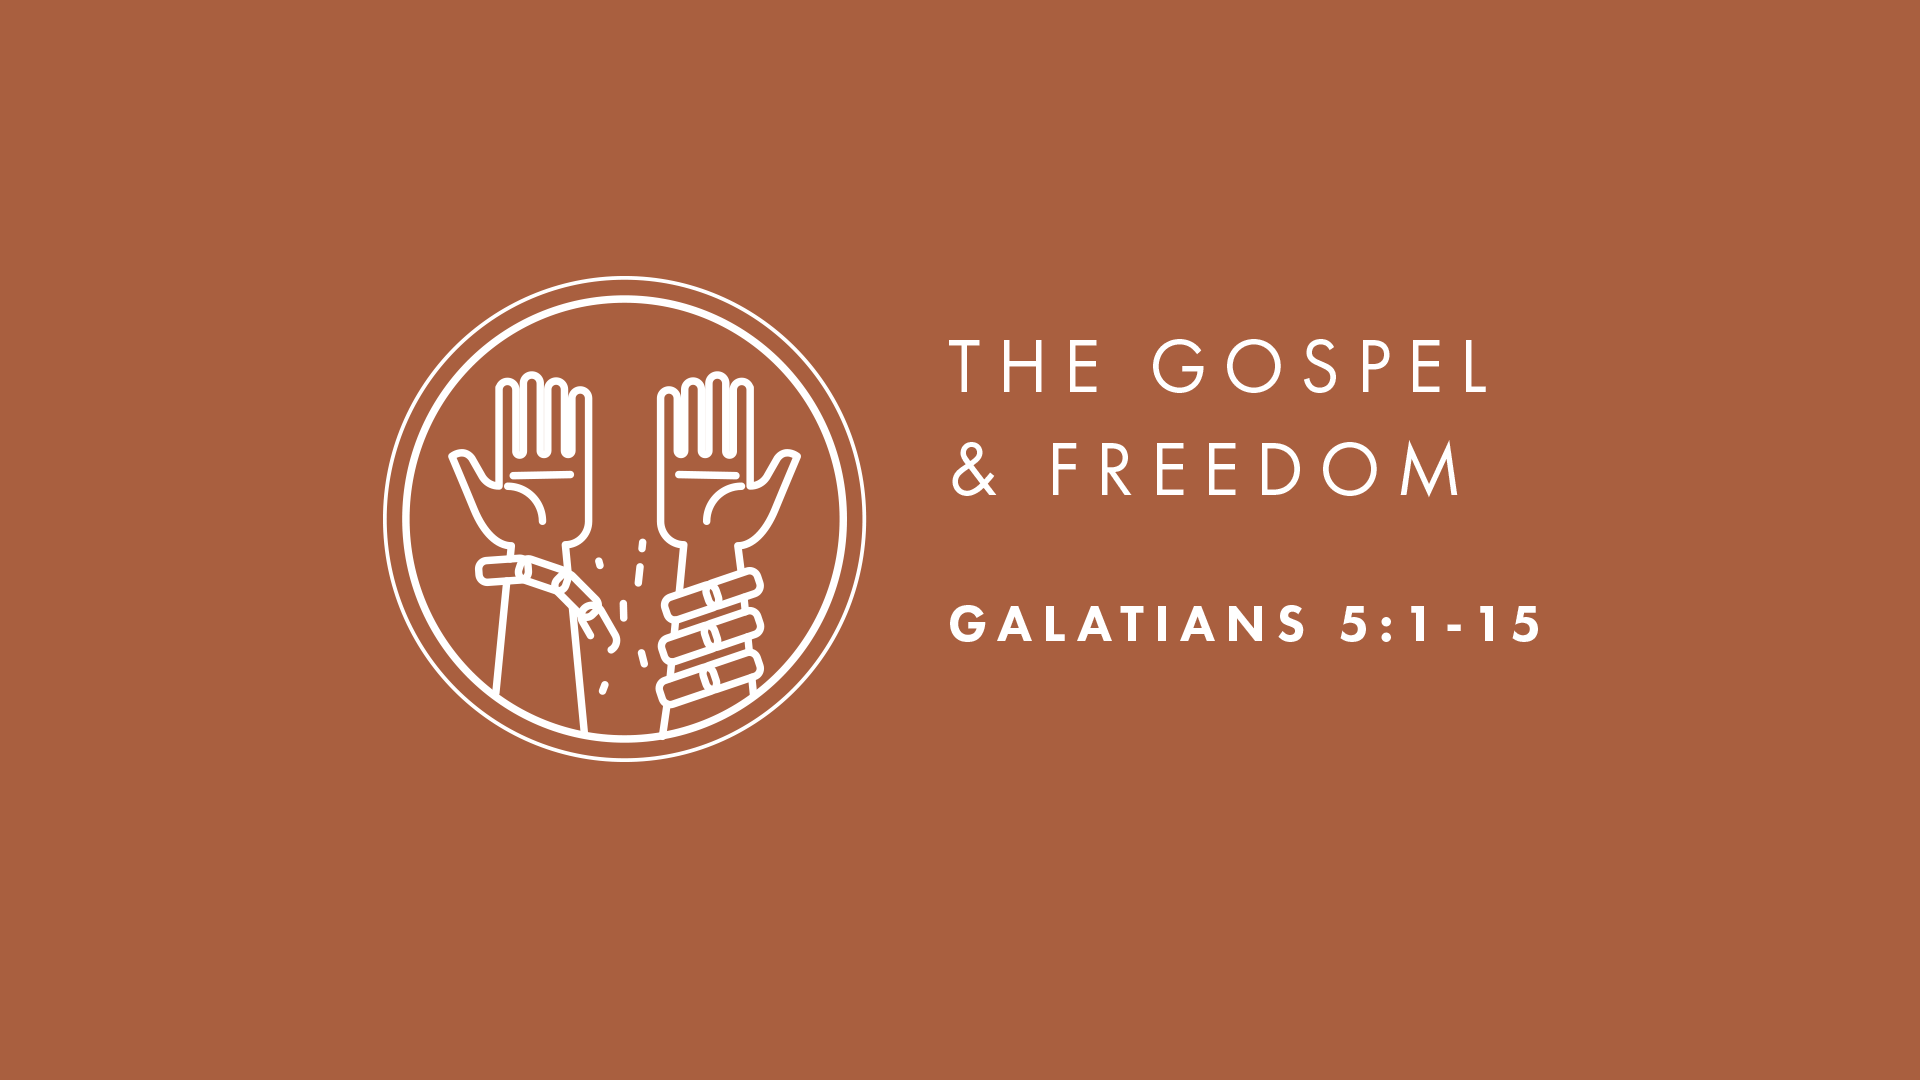 The Gospel and Freedom